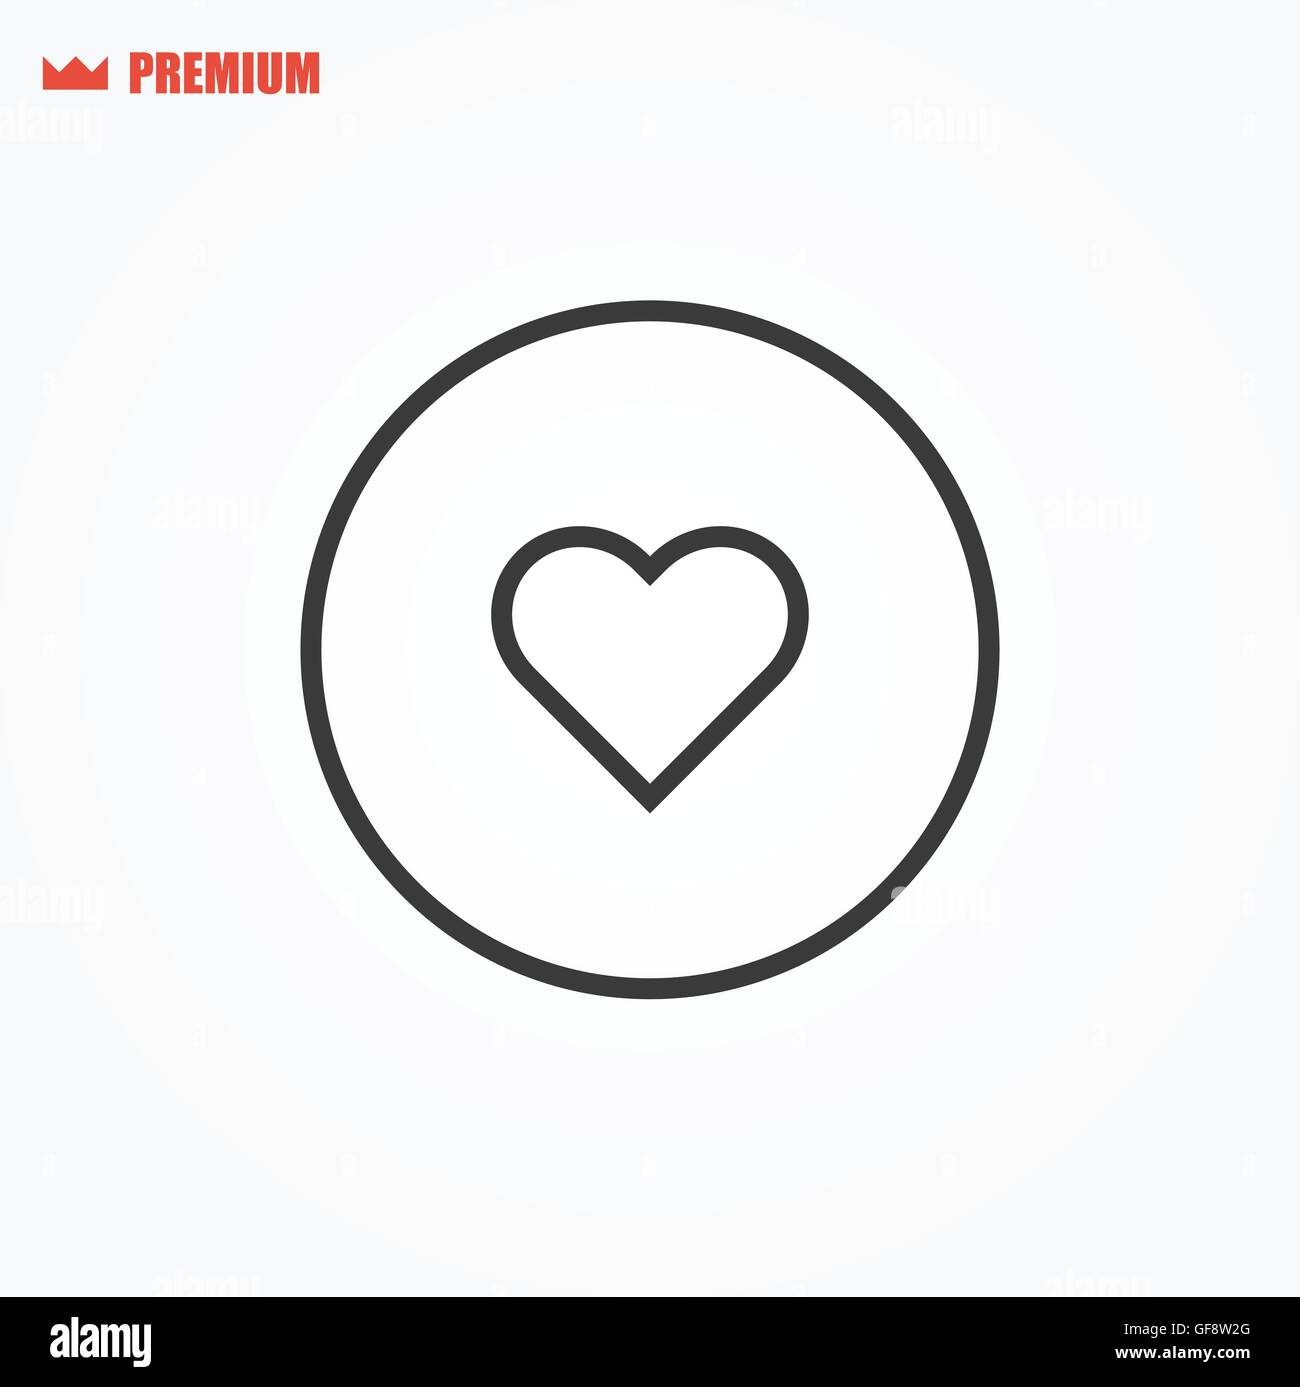 Rounded outline like heart vector icon - Stock Image